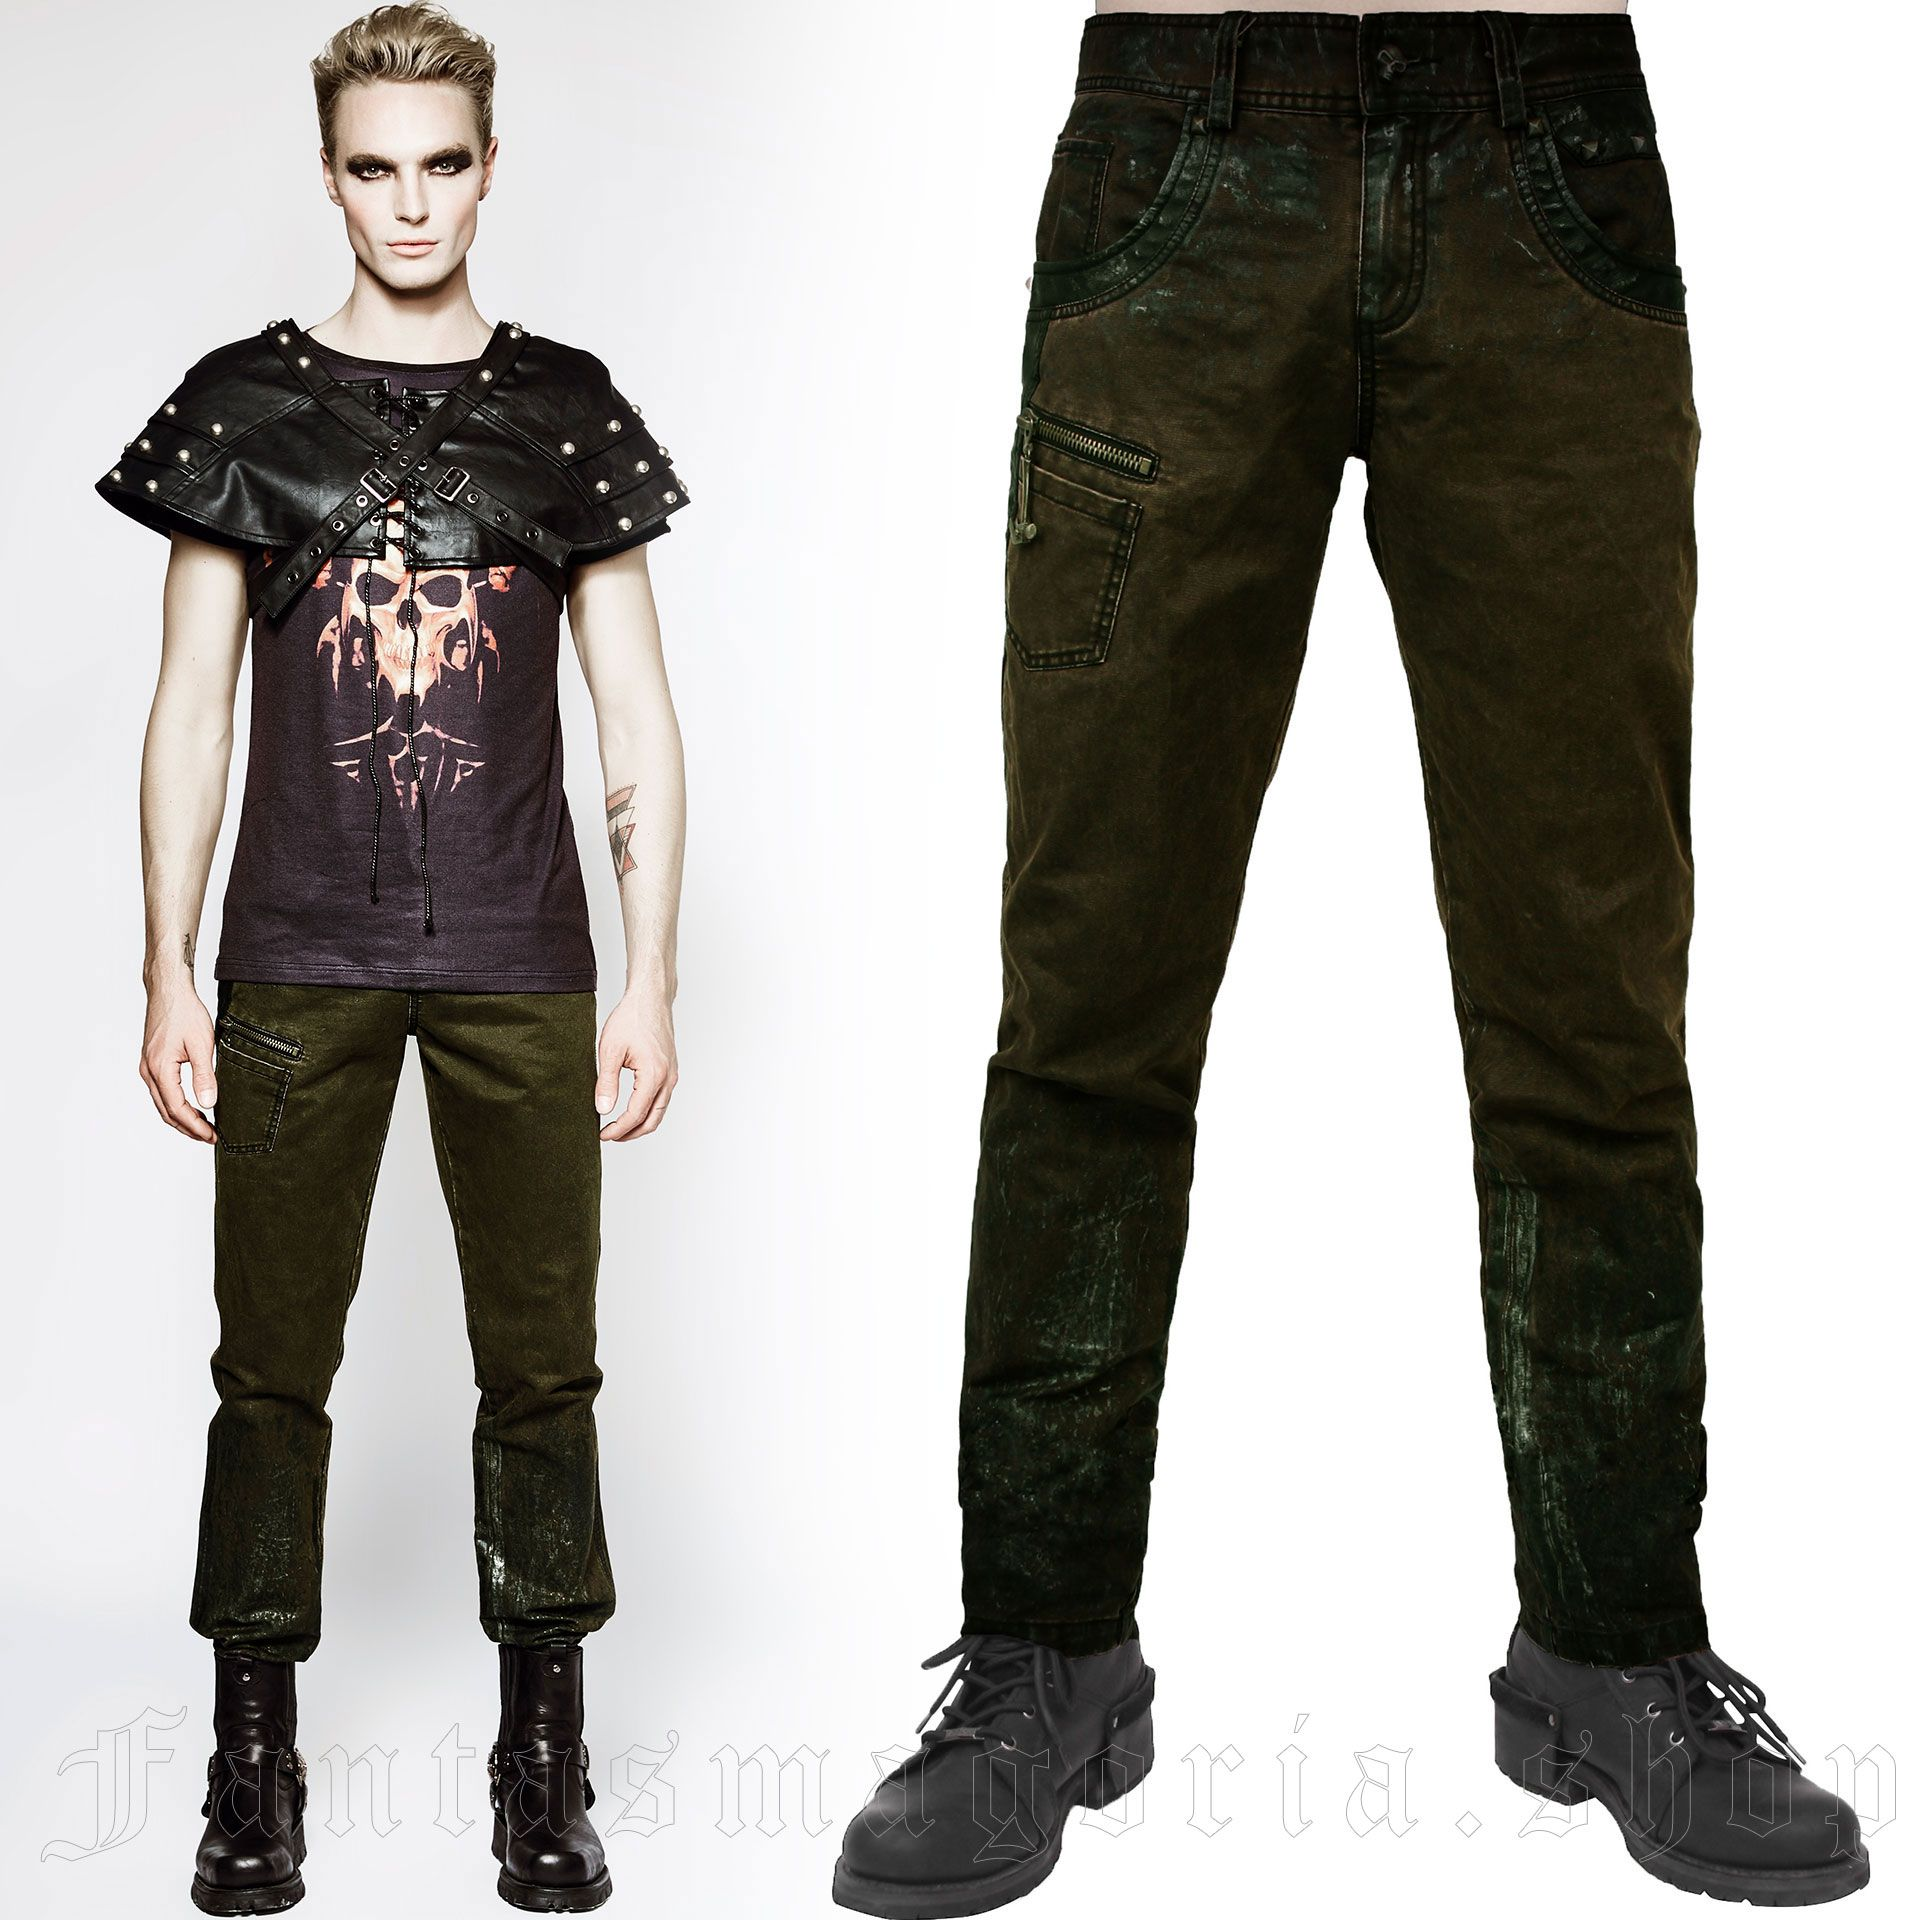 men's Wasteland Trousers by PUNK RAVE brand, code: K-199/GR